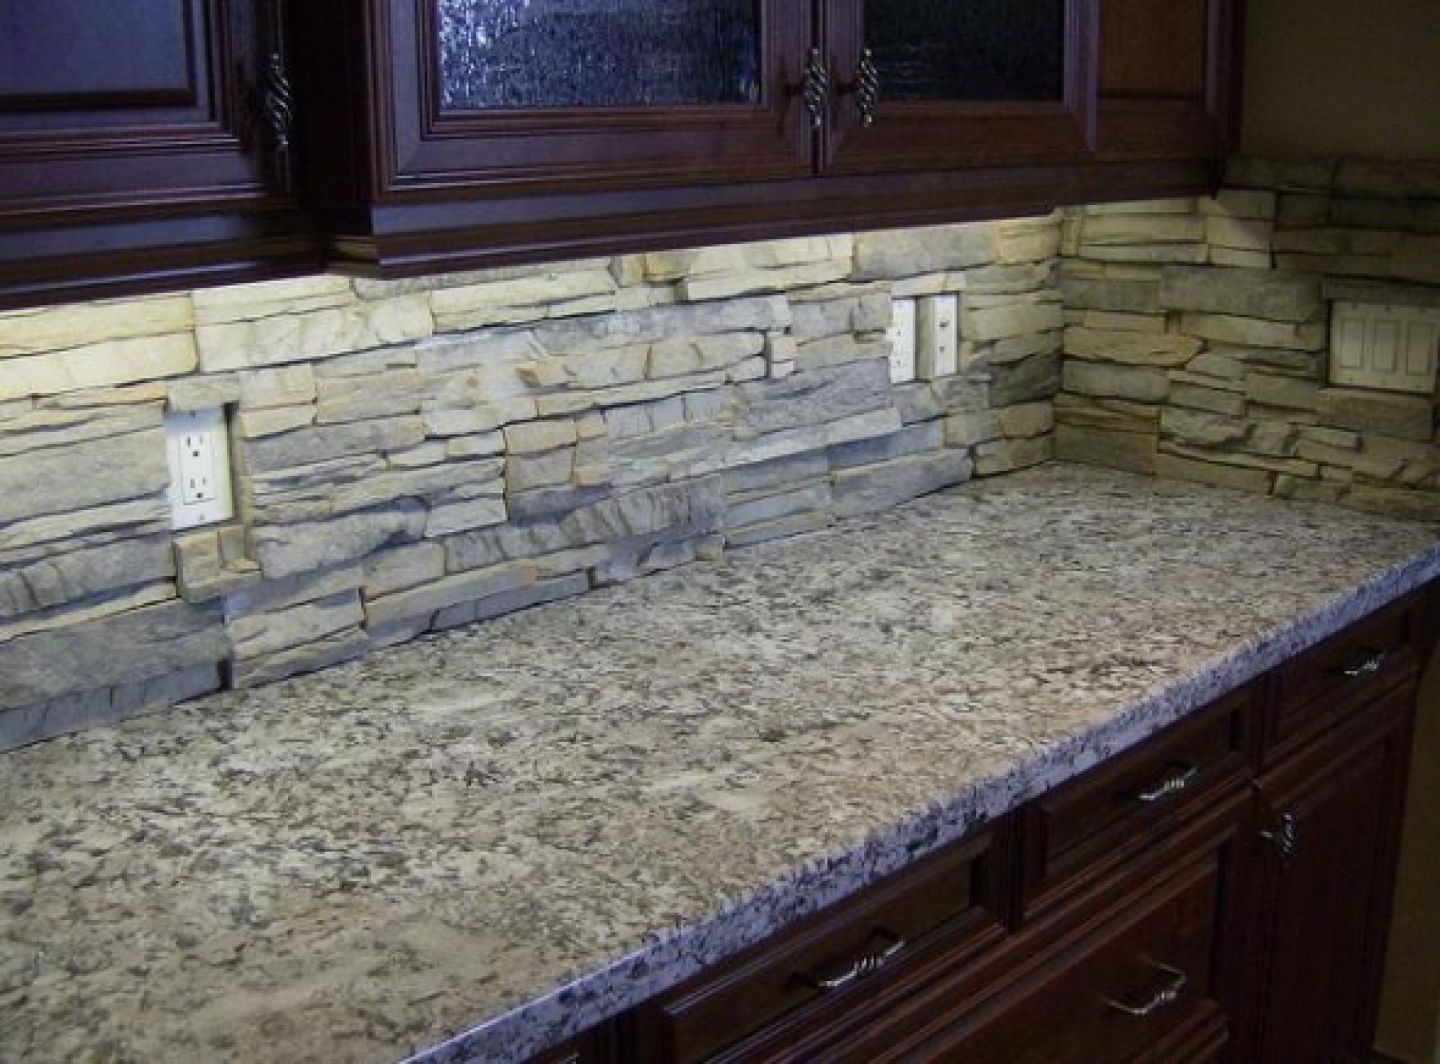 mesmerizing kitchen decorating. Lovely Kitchen, Mesmerizing Classic Stone Kitchen Backsplash Home Decorating Ideas Vintage Design Beige Marble R